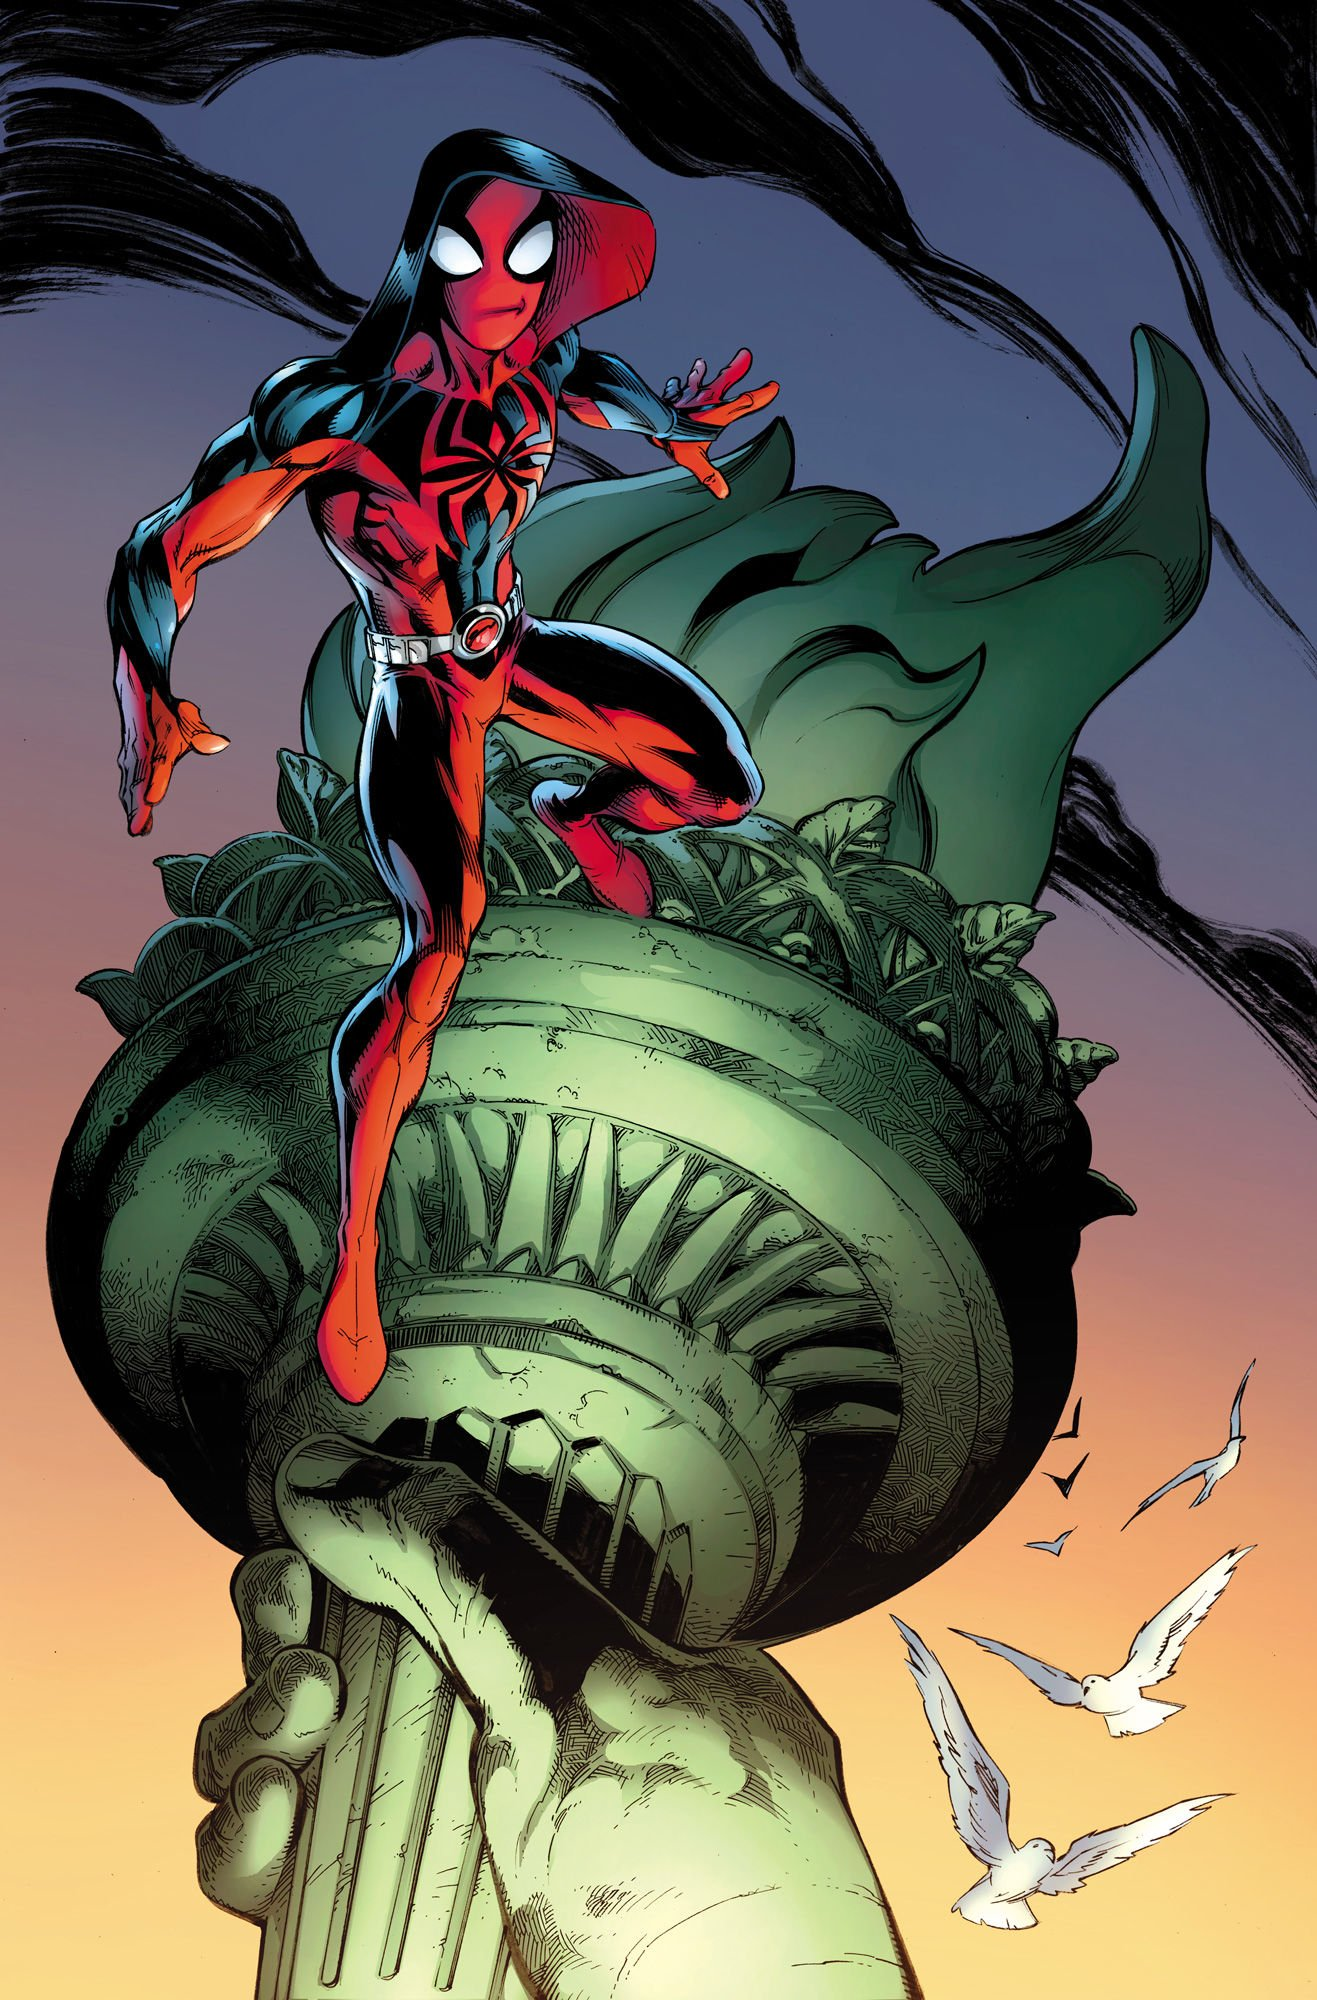 Ben Reilly: The Scarlet Spider #1 Review